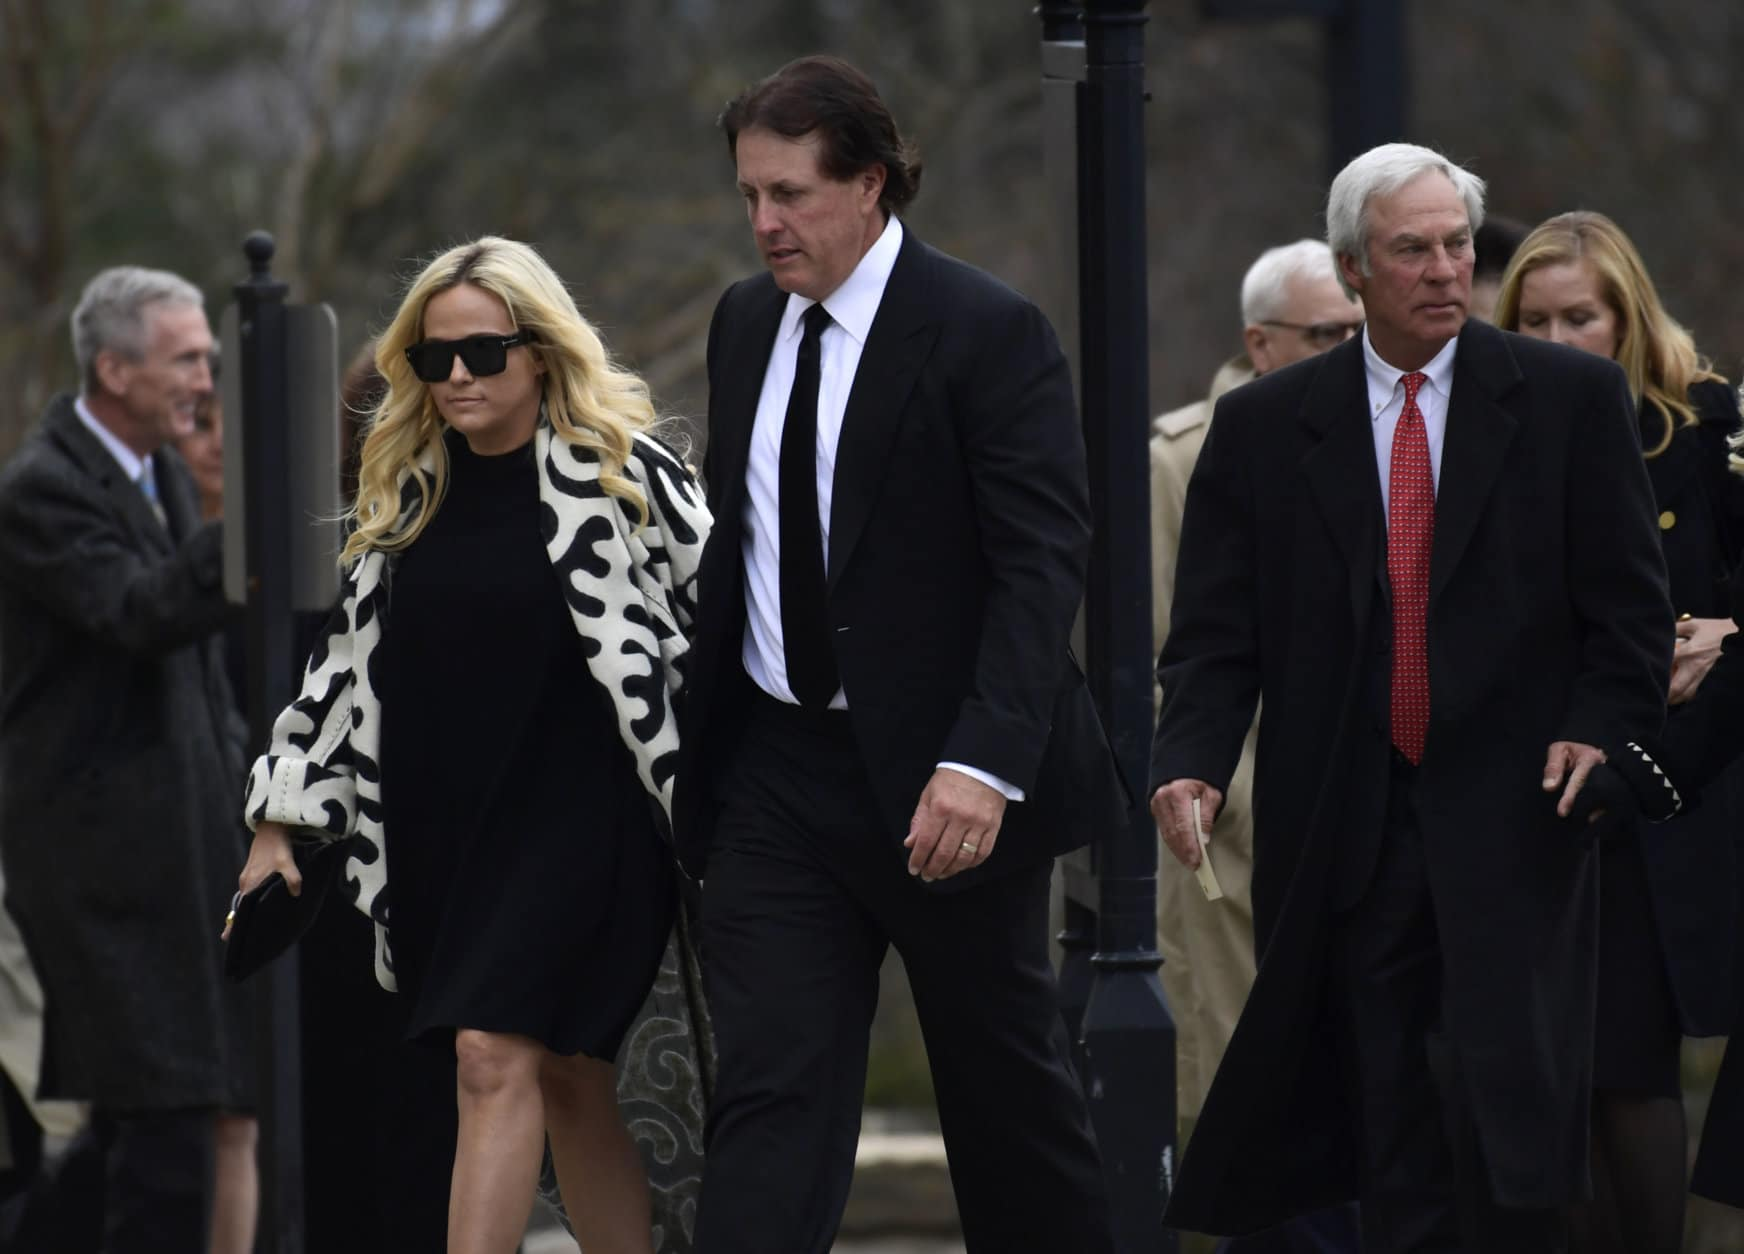 Professional golfer Phil Mickelson, center, arrives for the State Funeral of former President George H.W. Bush at the National Cathedral in Washington, Wednesday, Dec. 5, 2018. (AP Photo/Susan Walsh)